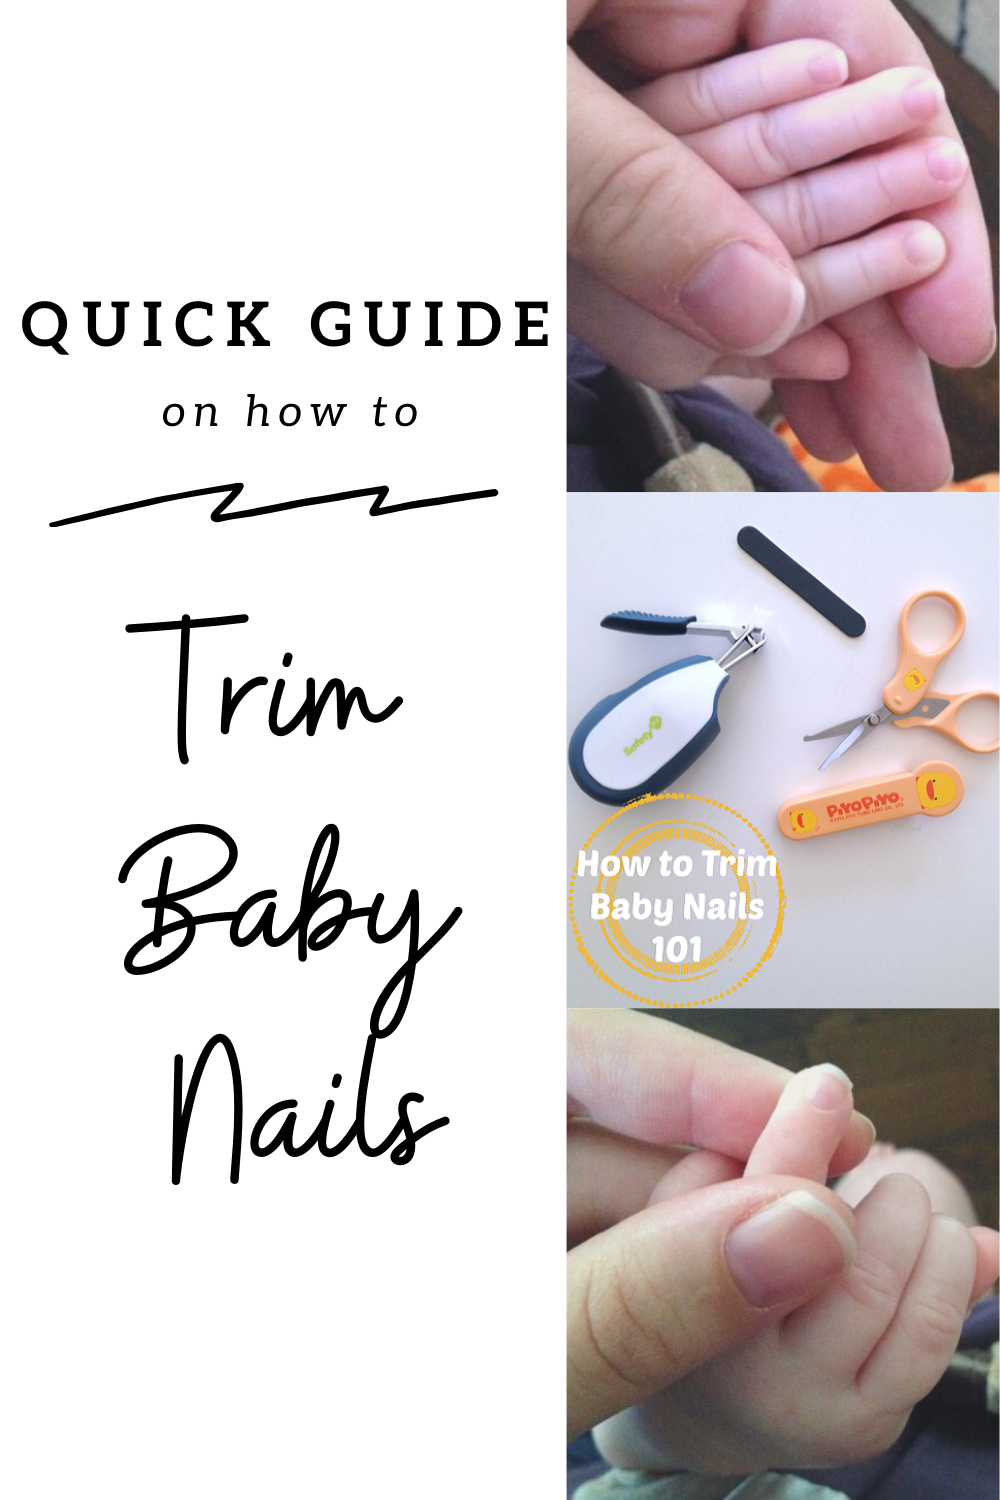 Quick Guide on How to Trim Baby Nails // Life Anchored